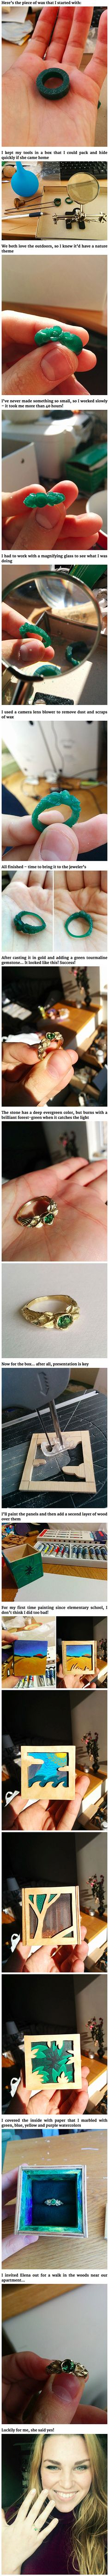 Because I like to sculpt wood and clay, I decided to, in one way or another, create a ring of my own design. Eventually, I found a jeweler who agreed to take anything I'd make out of wax and cast it in gold!<<aww